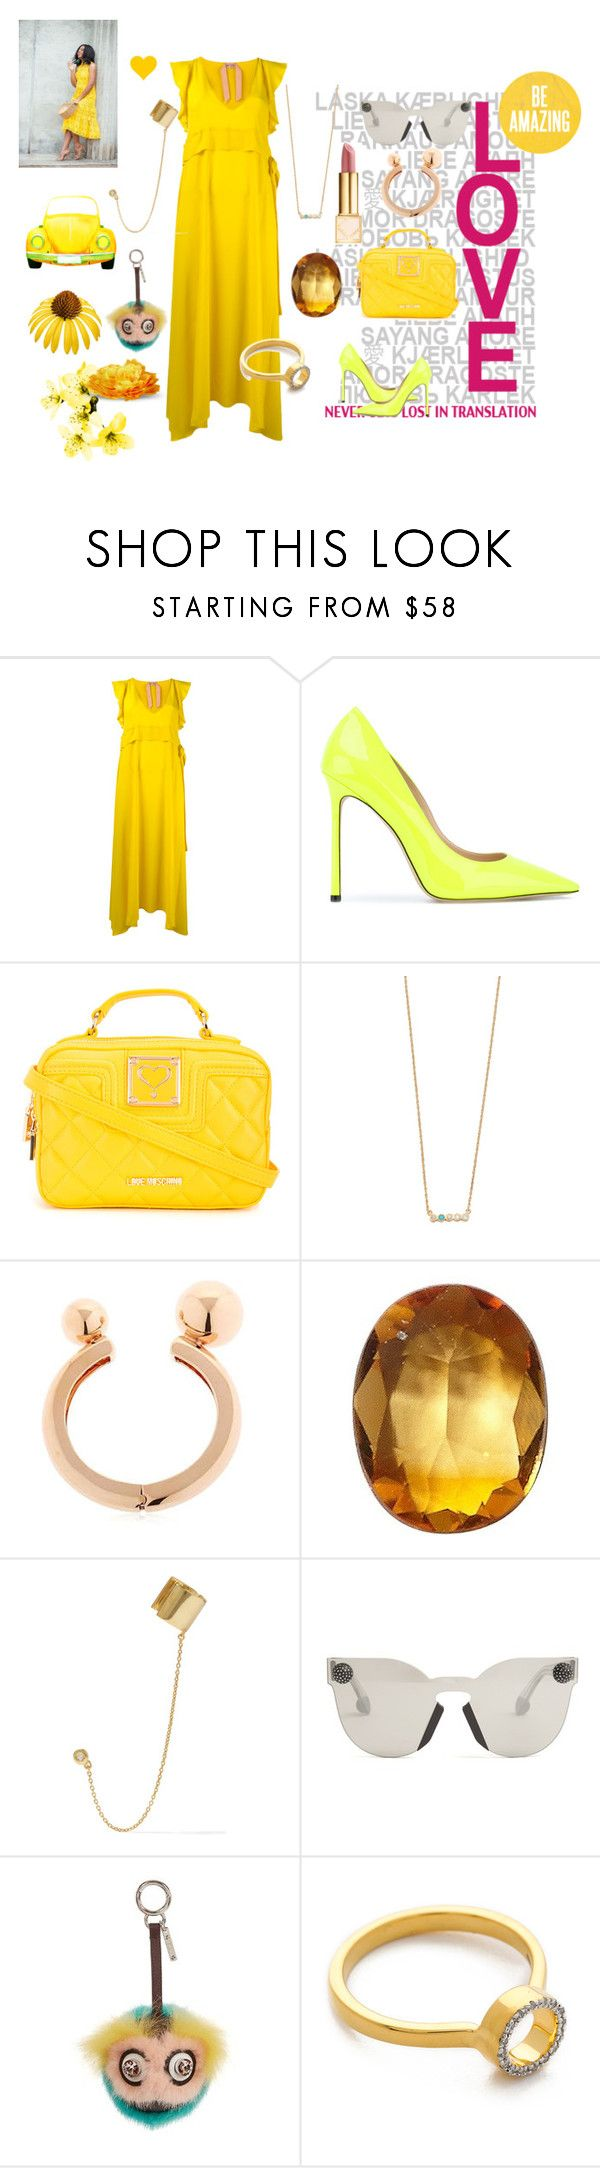 """Yellow fashion"" by jamuna-kaalla ❤ liked on Polyvore featuring Jimmy Choo, Love Moschino, Jennifer Zeuner, Mawi, Loquet, Aamaya by Priyanka, Christopher Kane, Fendi, Monica Vinader and vintage"